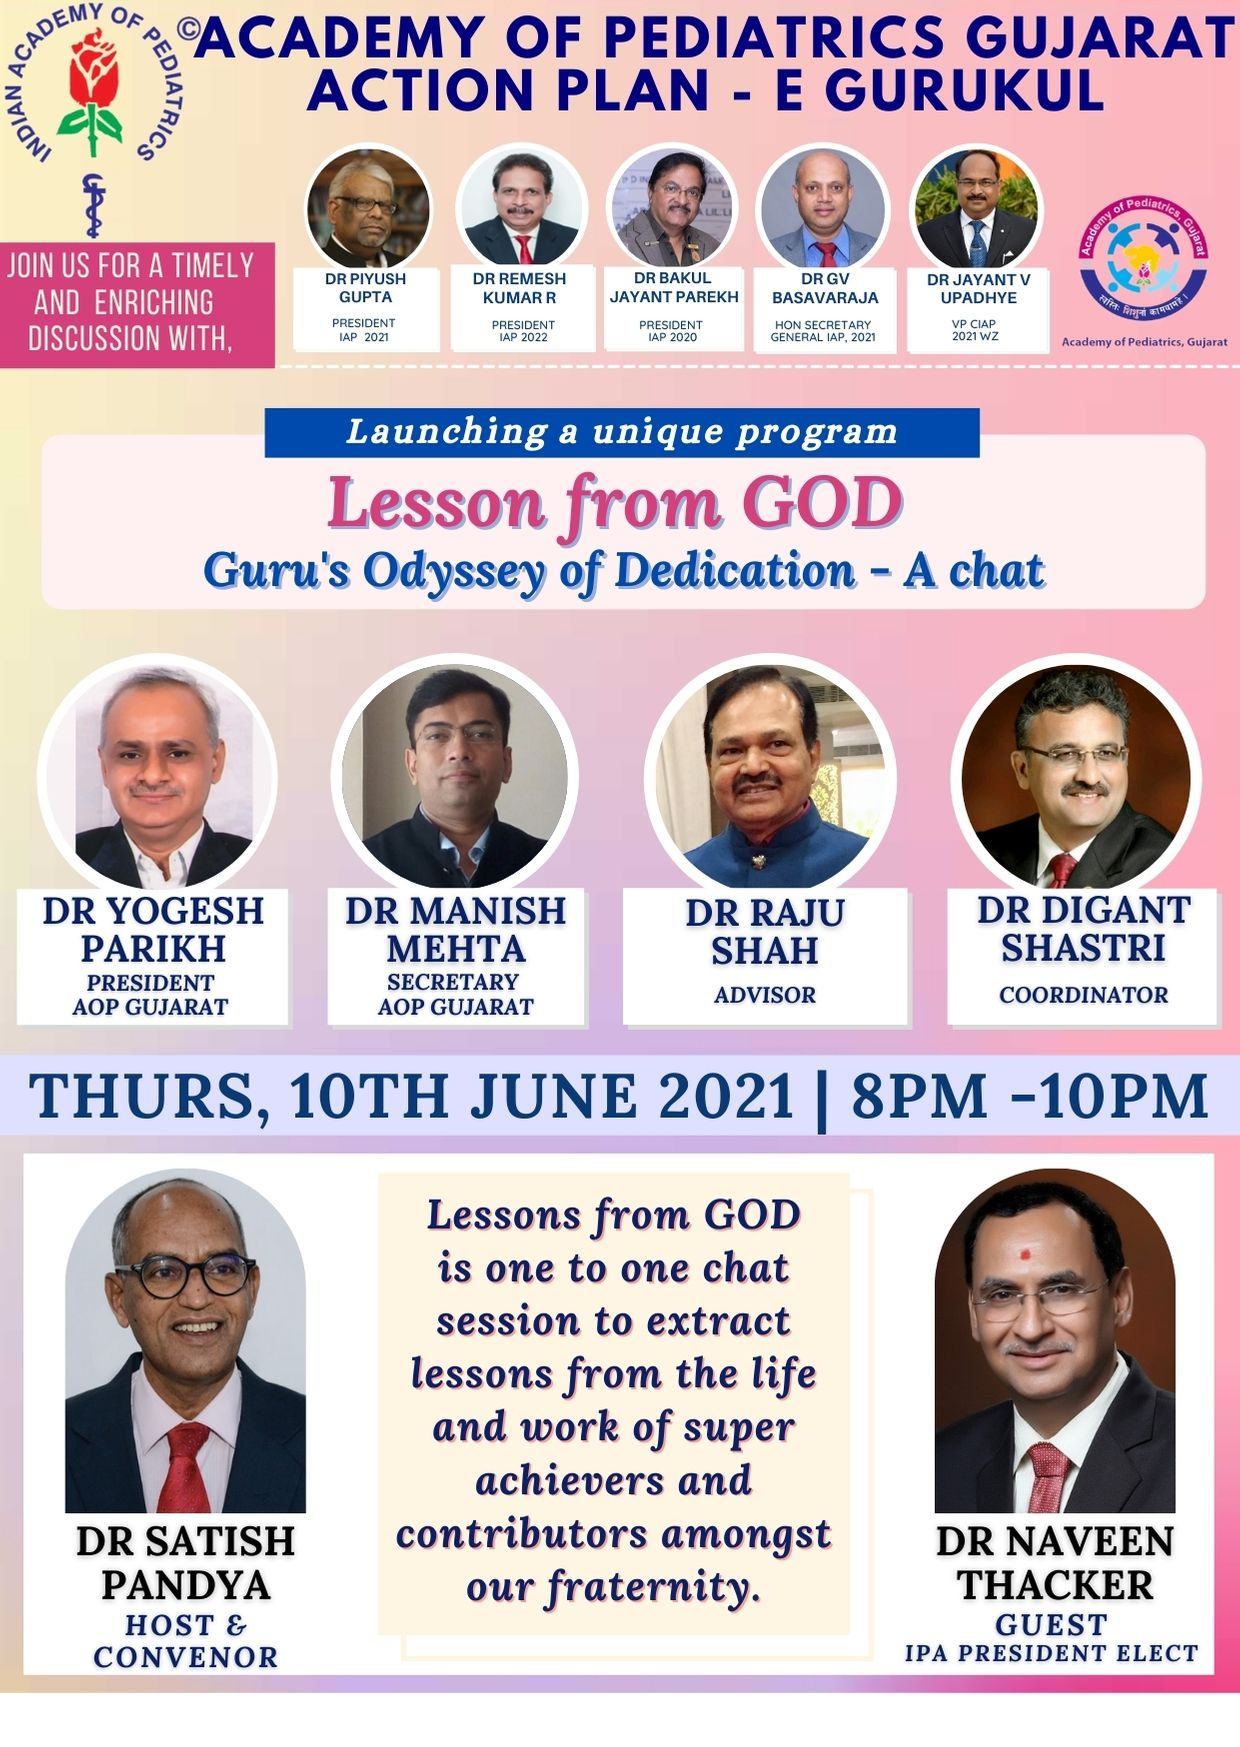 10th-June-AOP-Gujarat-Action-Plan-Lesson-from-GOD-Gurus-Odyssey-of-Dedication-A-chat